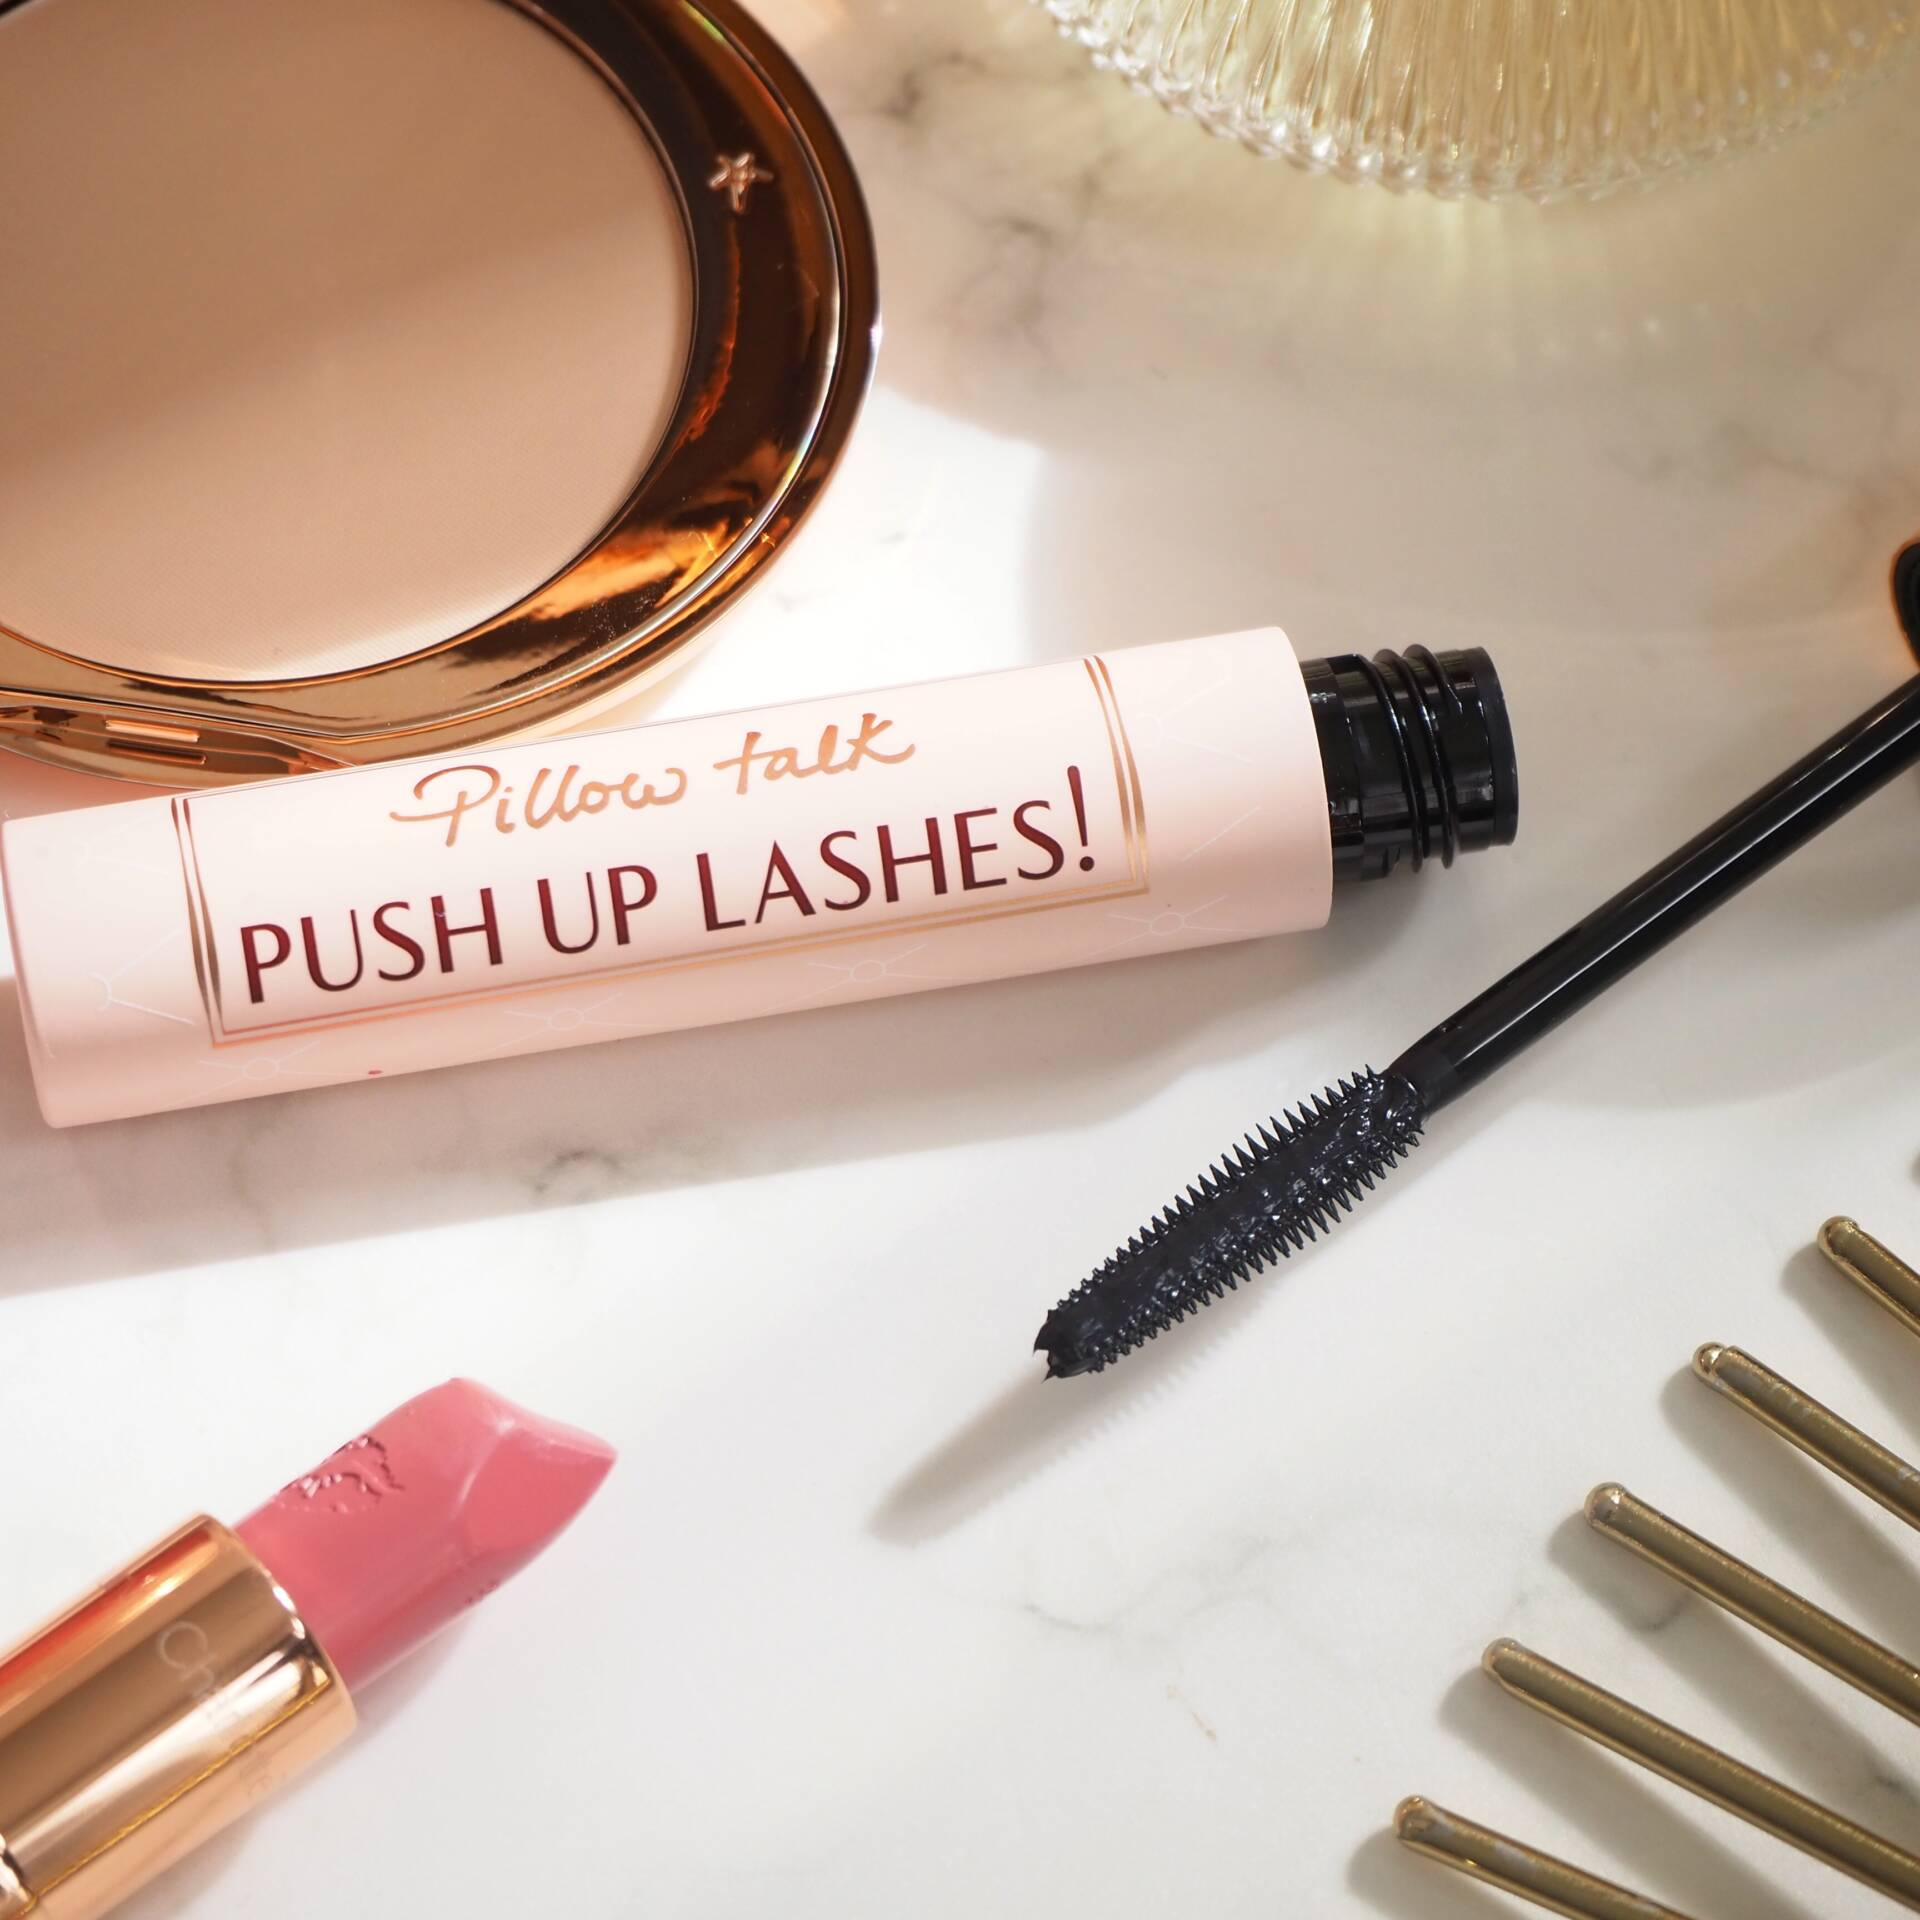 Charlotte-Tilbury-Pillow-Talk-Push-Up-Lashes-Mascara-Review